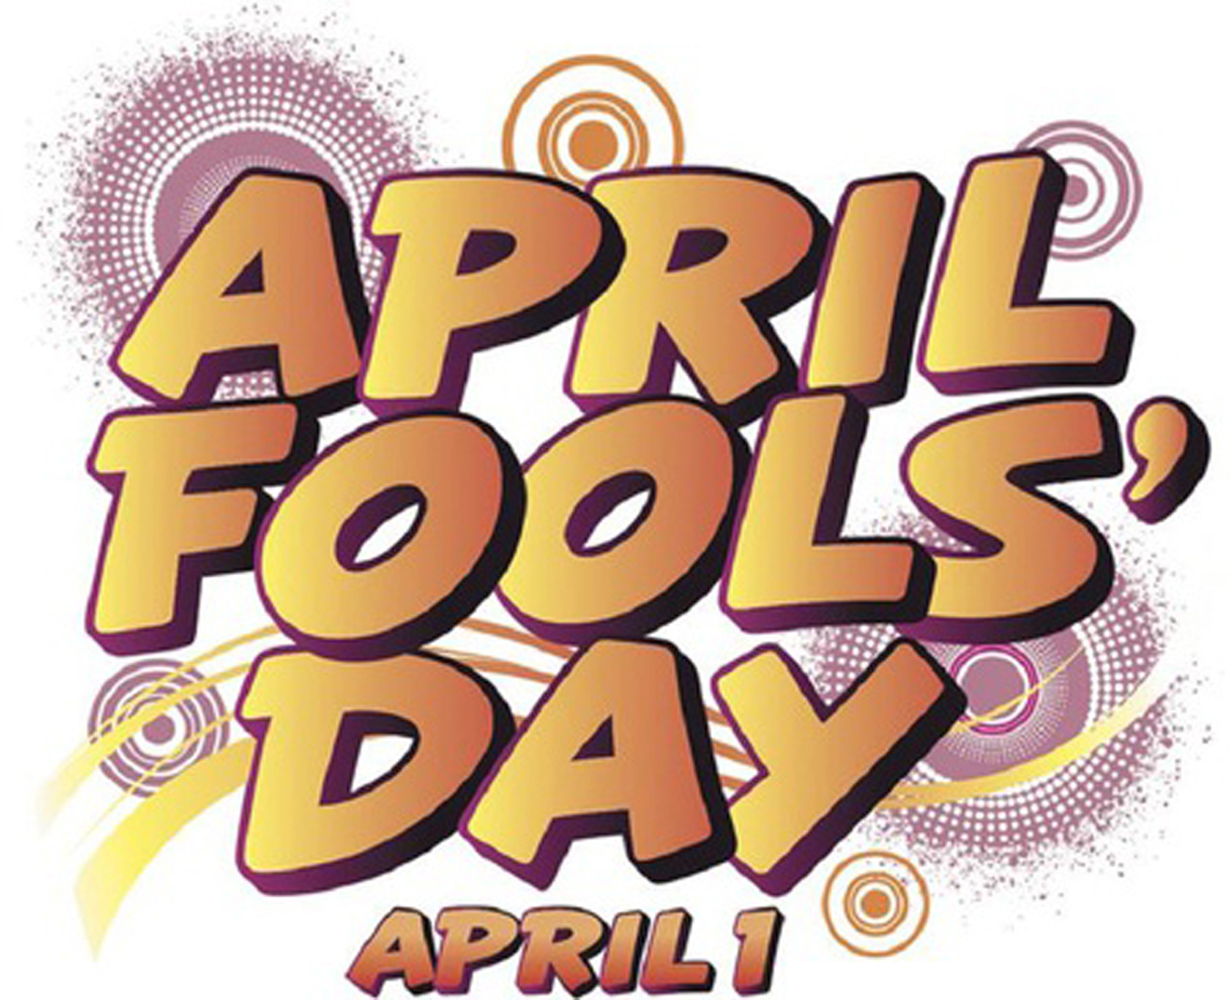 1st April Fools Day Whatsapp Funny Video Clips Pranks Ideas